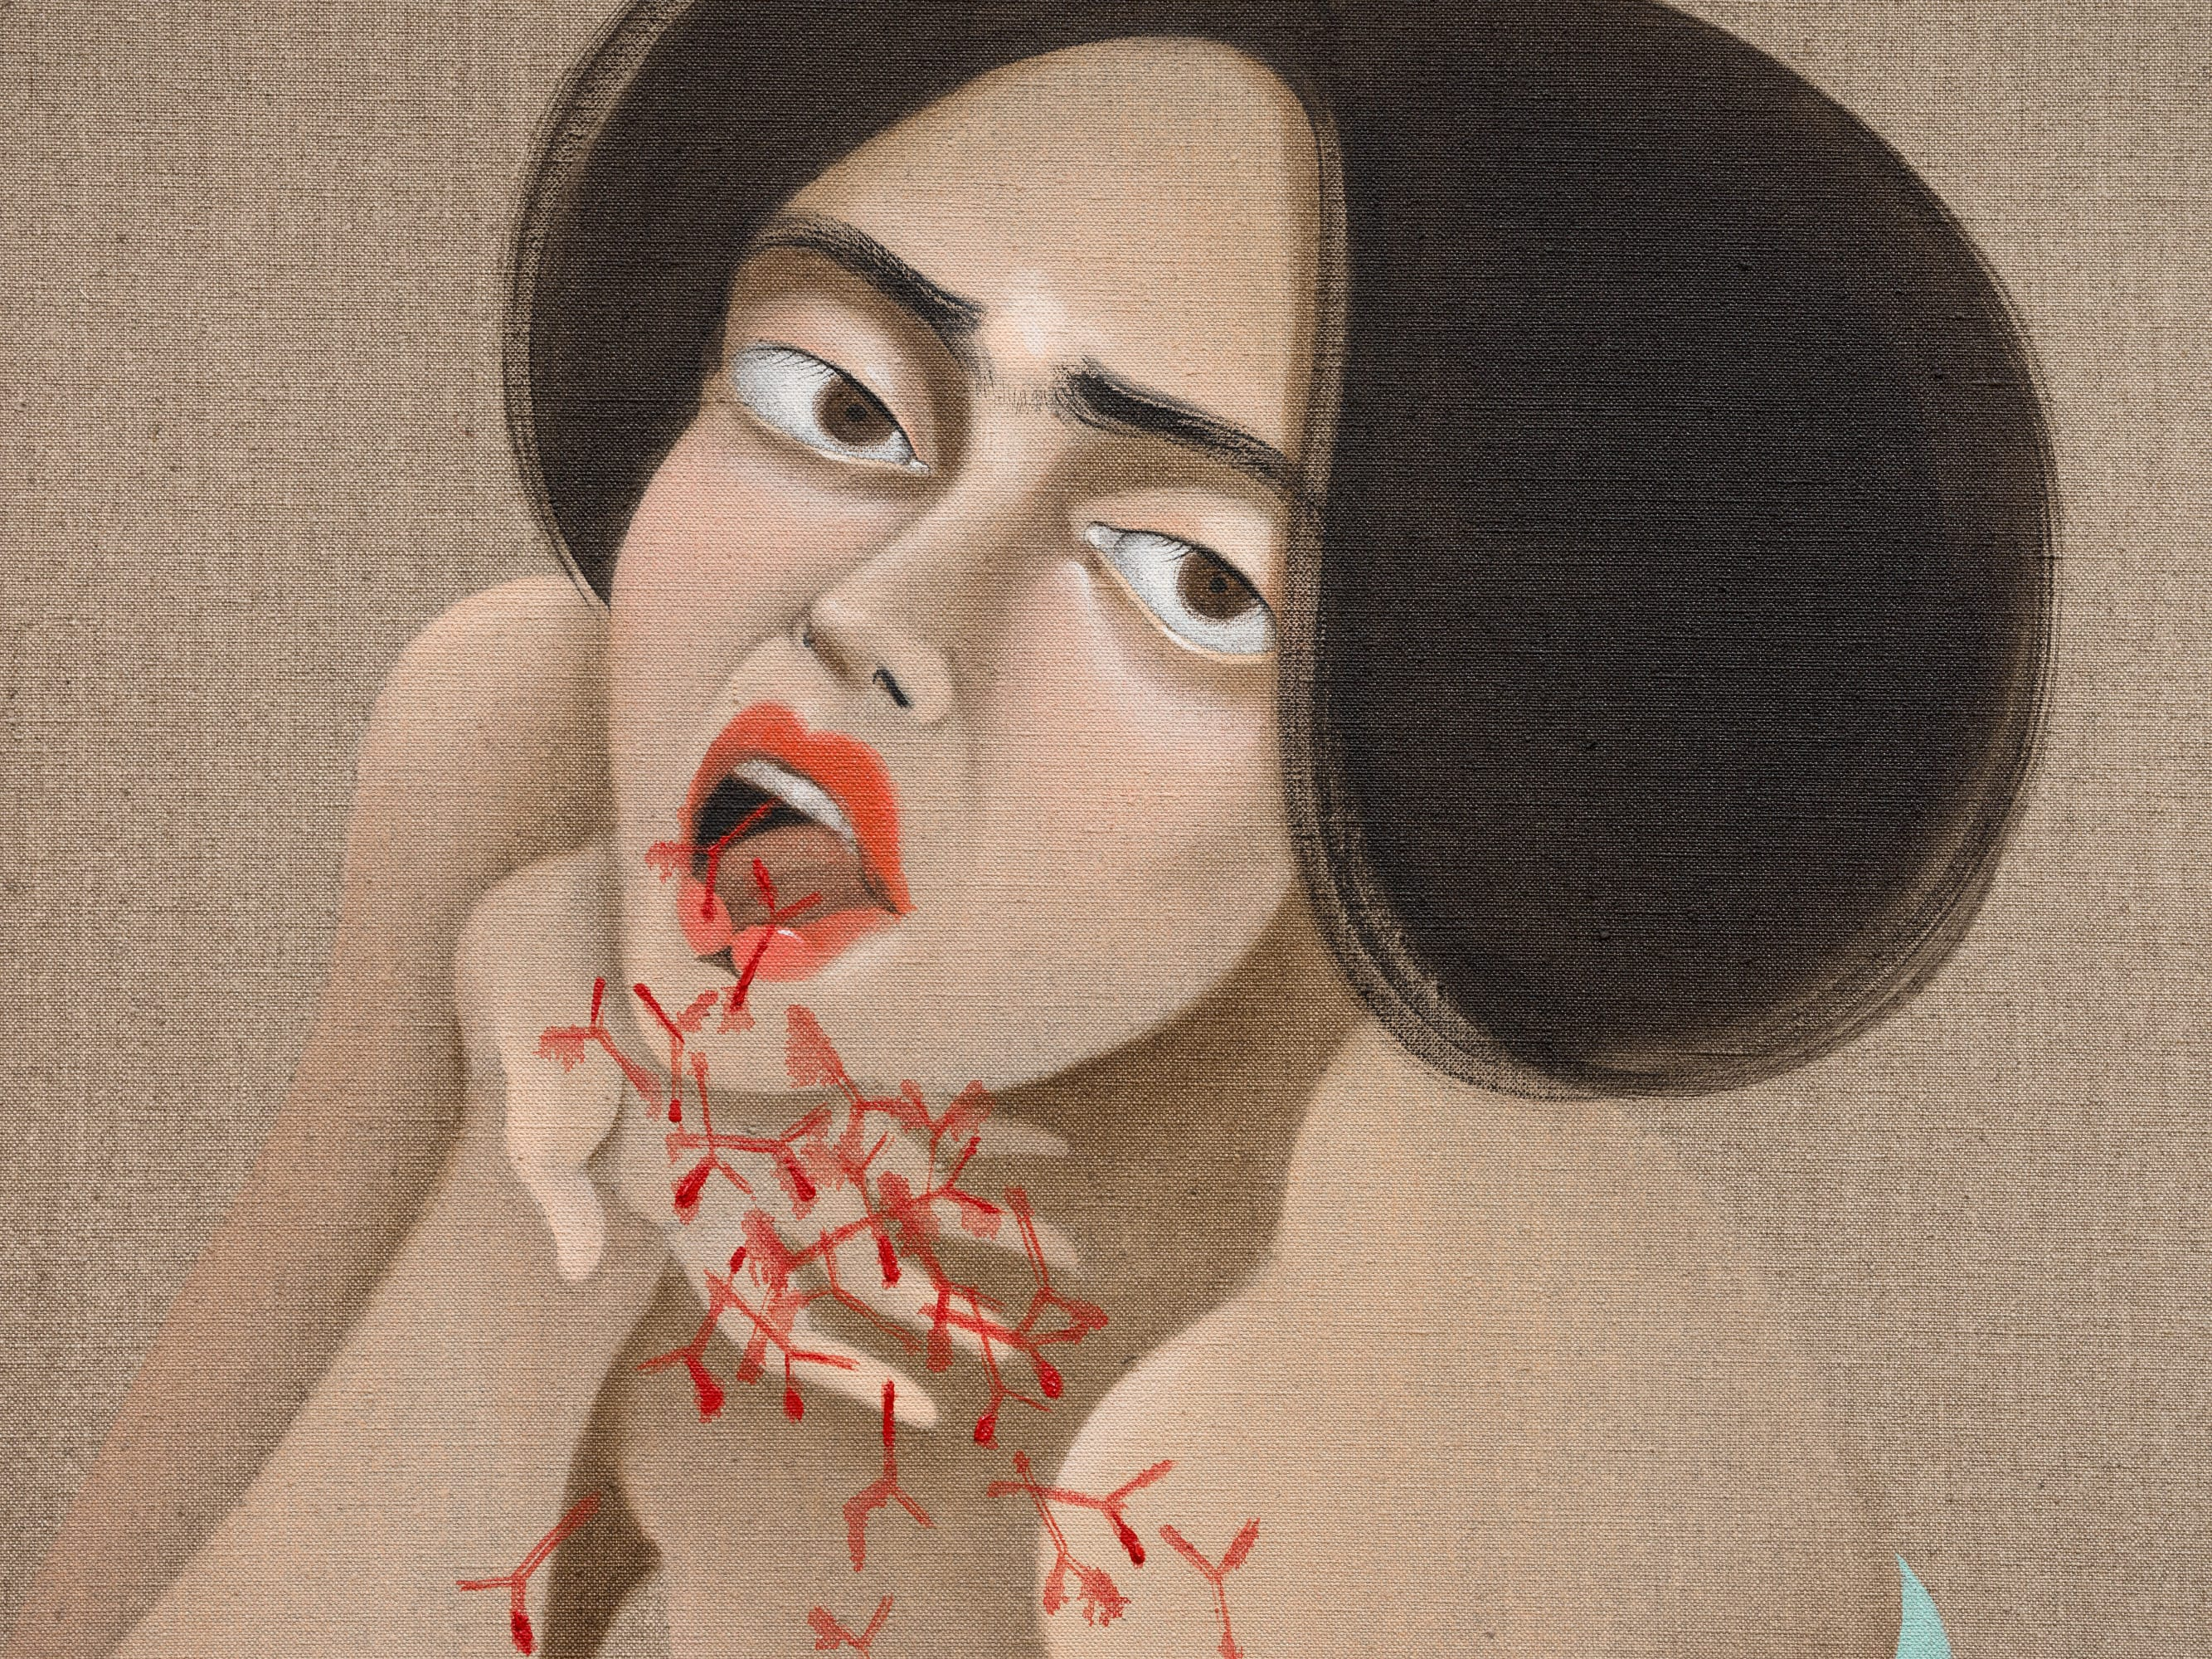 Hayv Kahraman The touch of Otherness (second iteration)